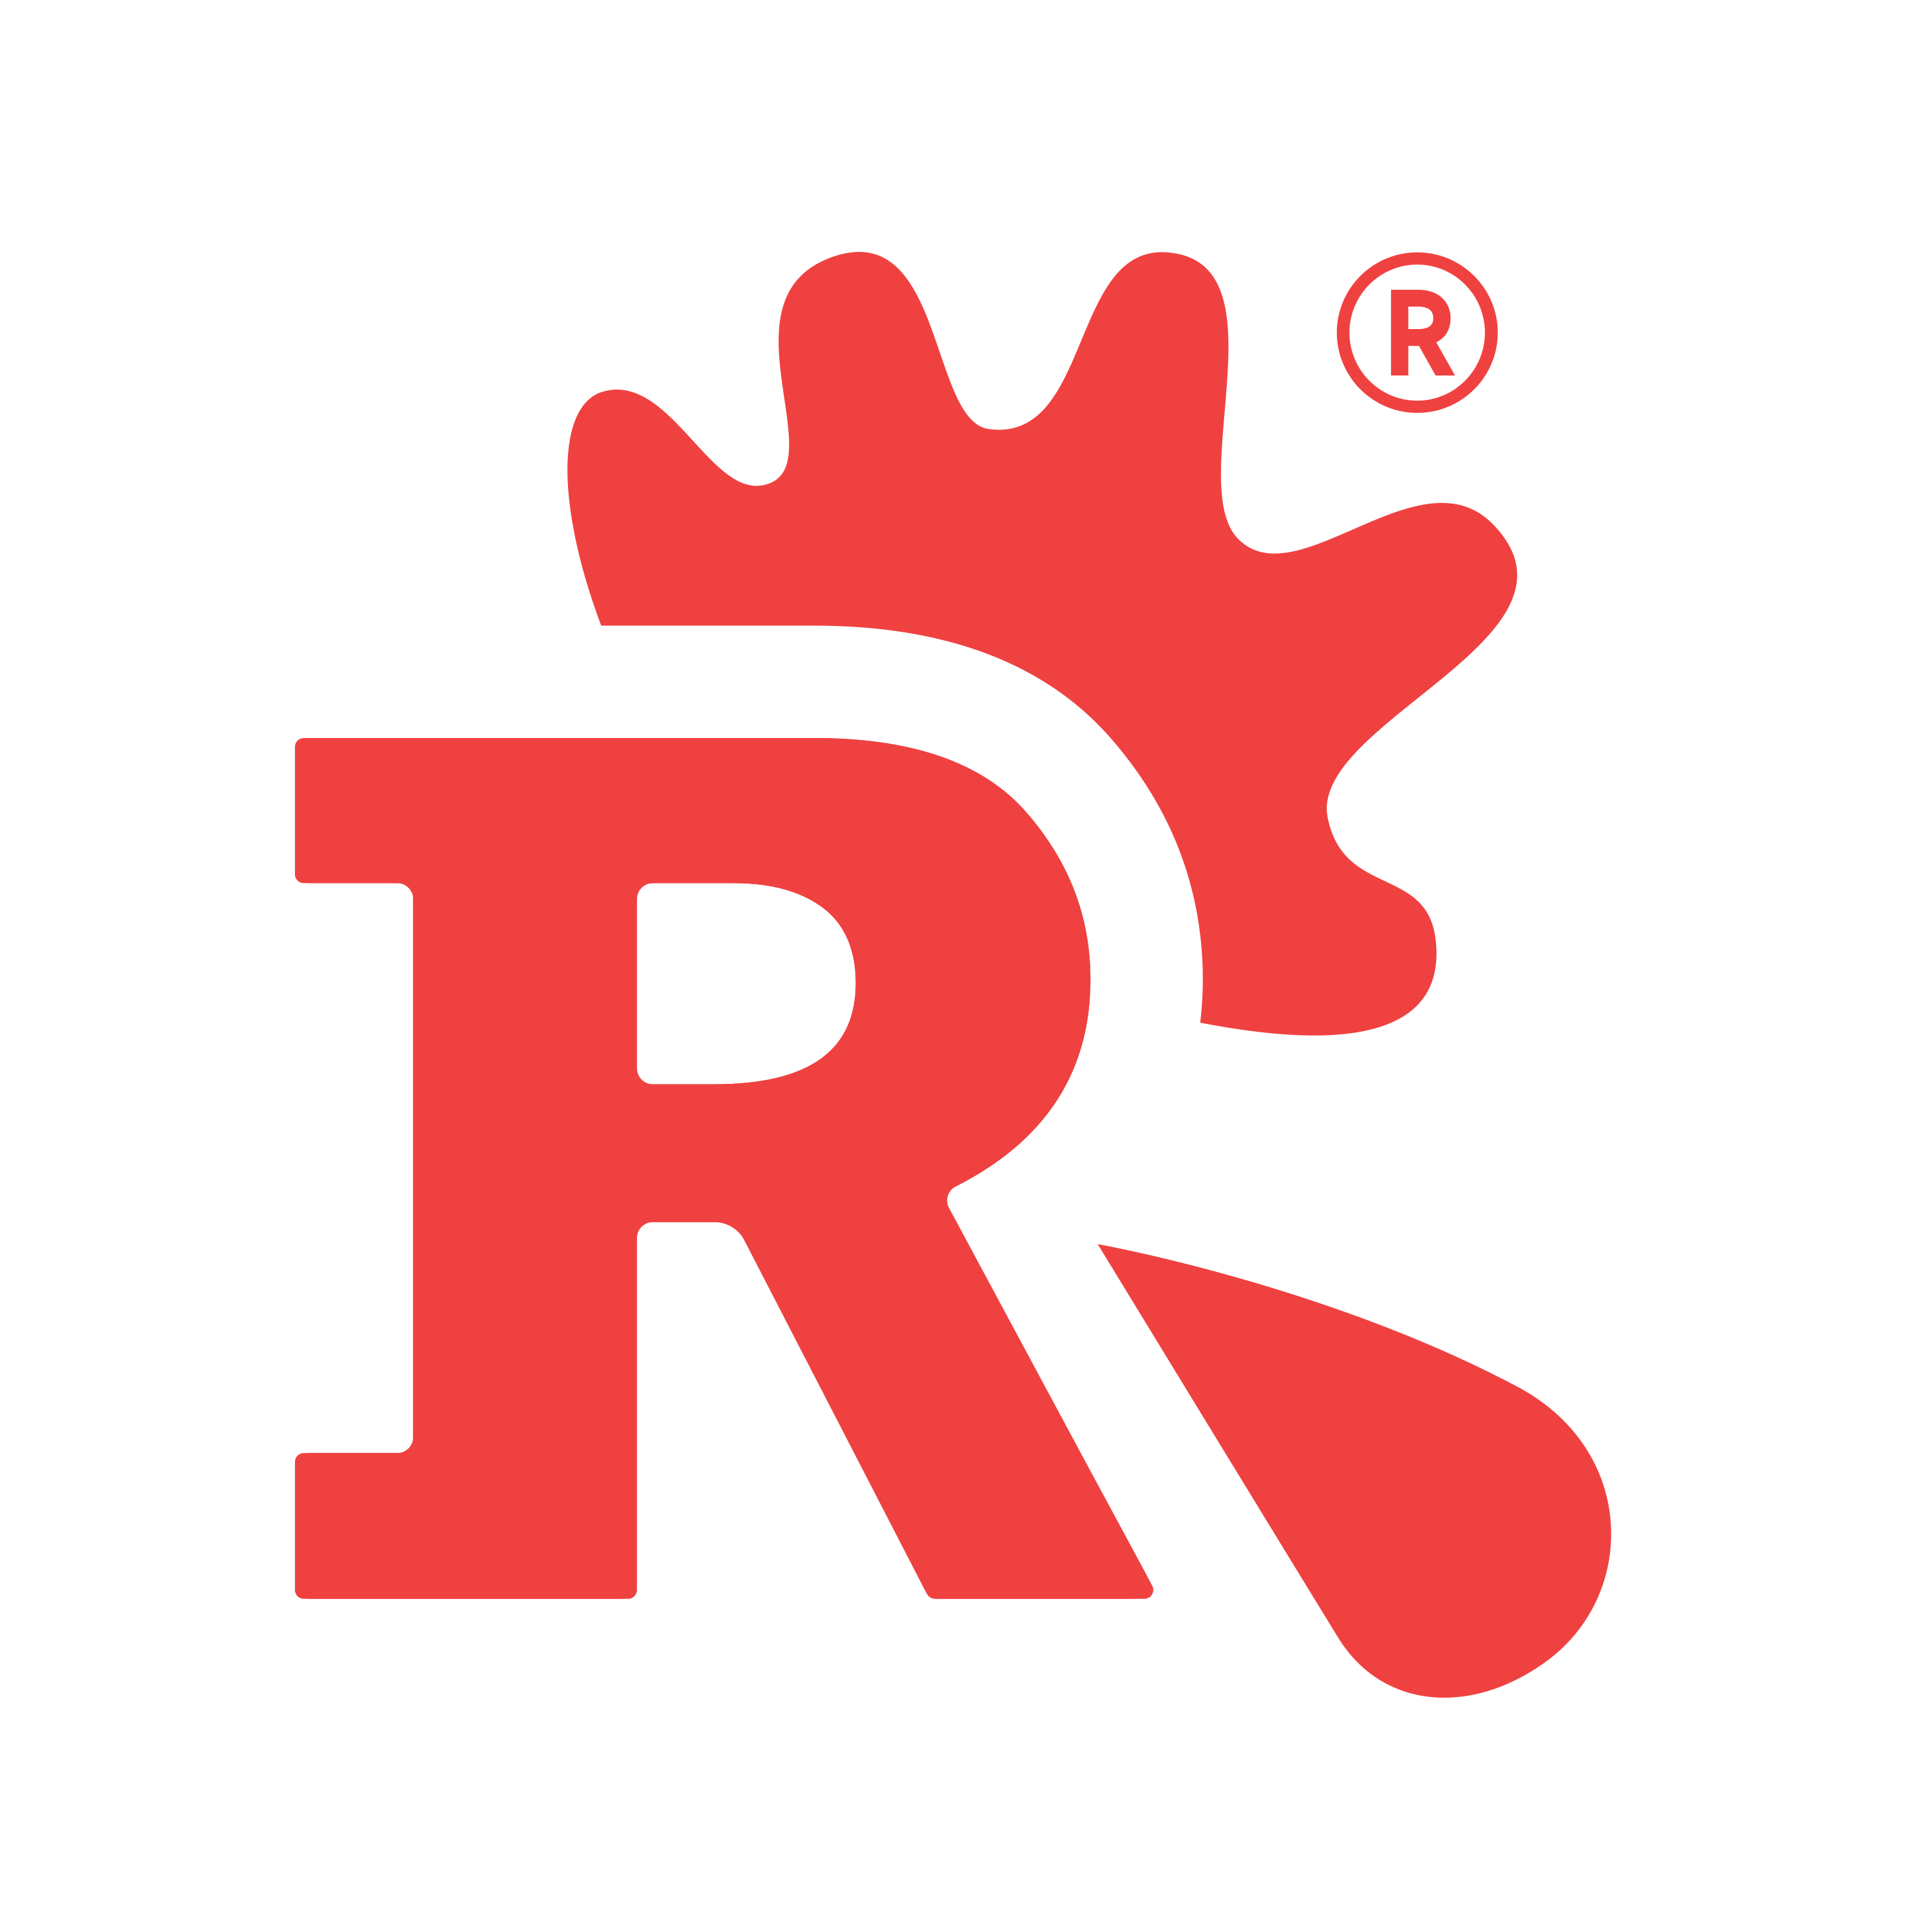 https://www.pro-manchester.co.uk/wp-content/uploads/2021/03/Rooster-Wordmark-FC-RGB.png